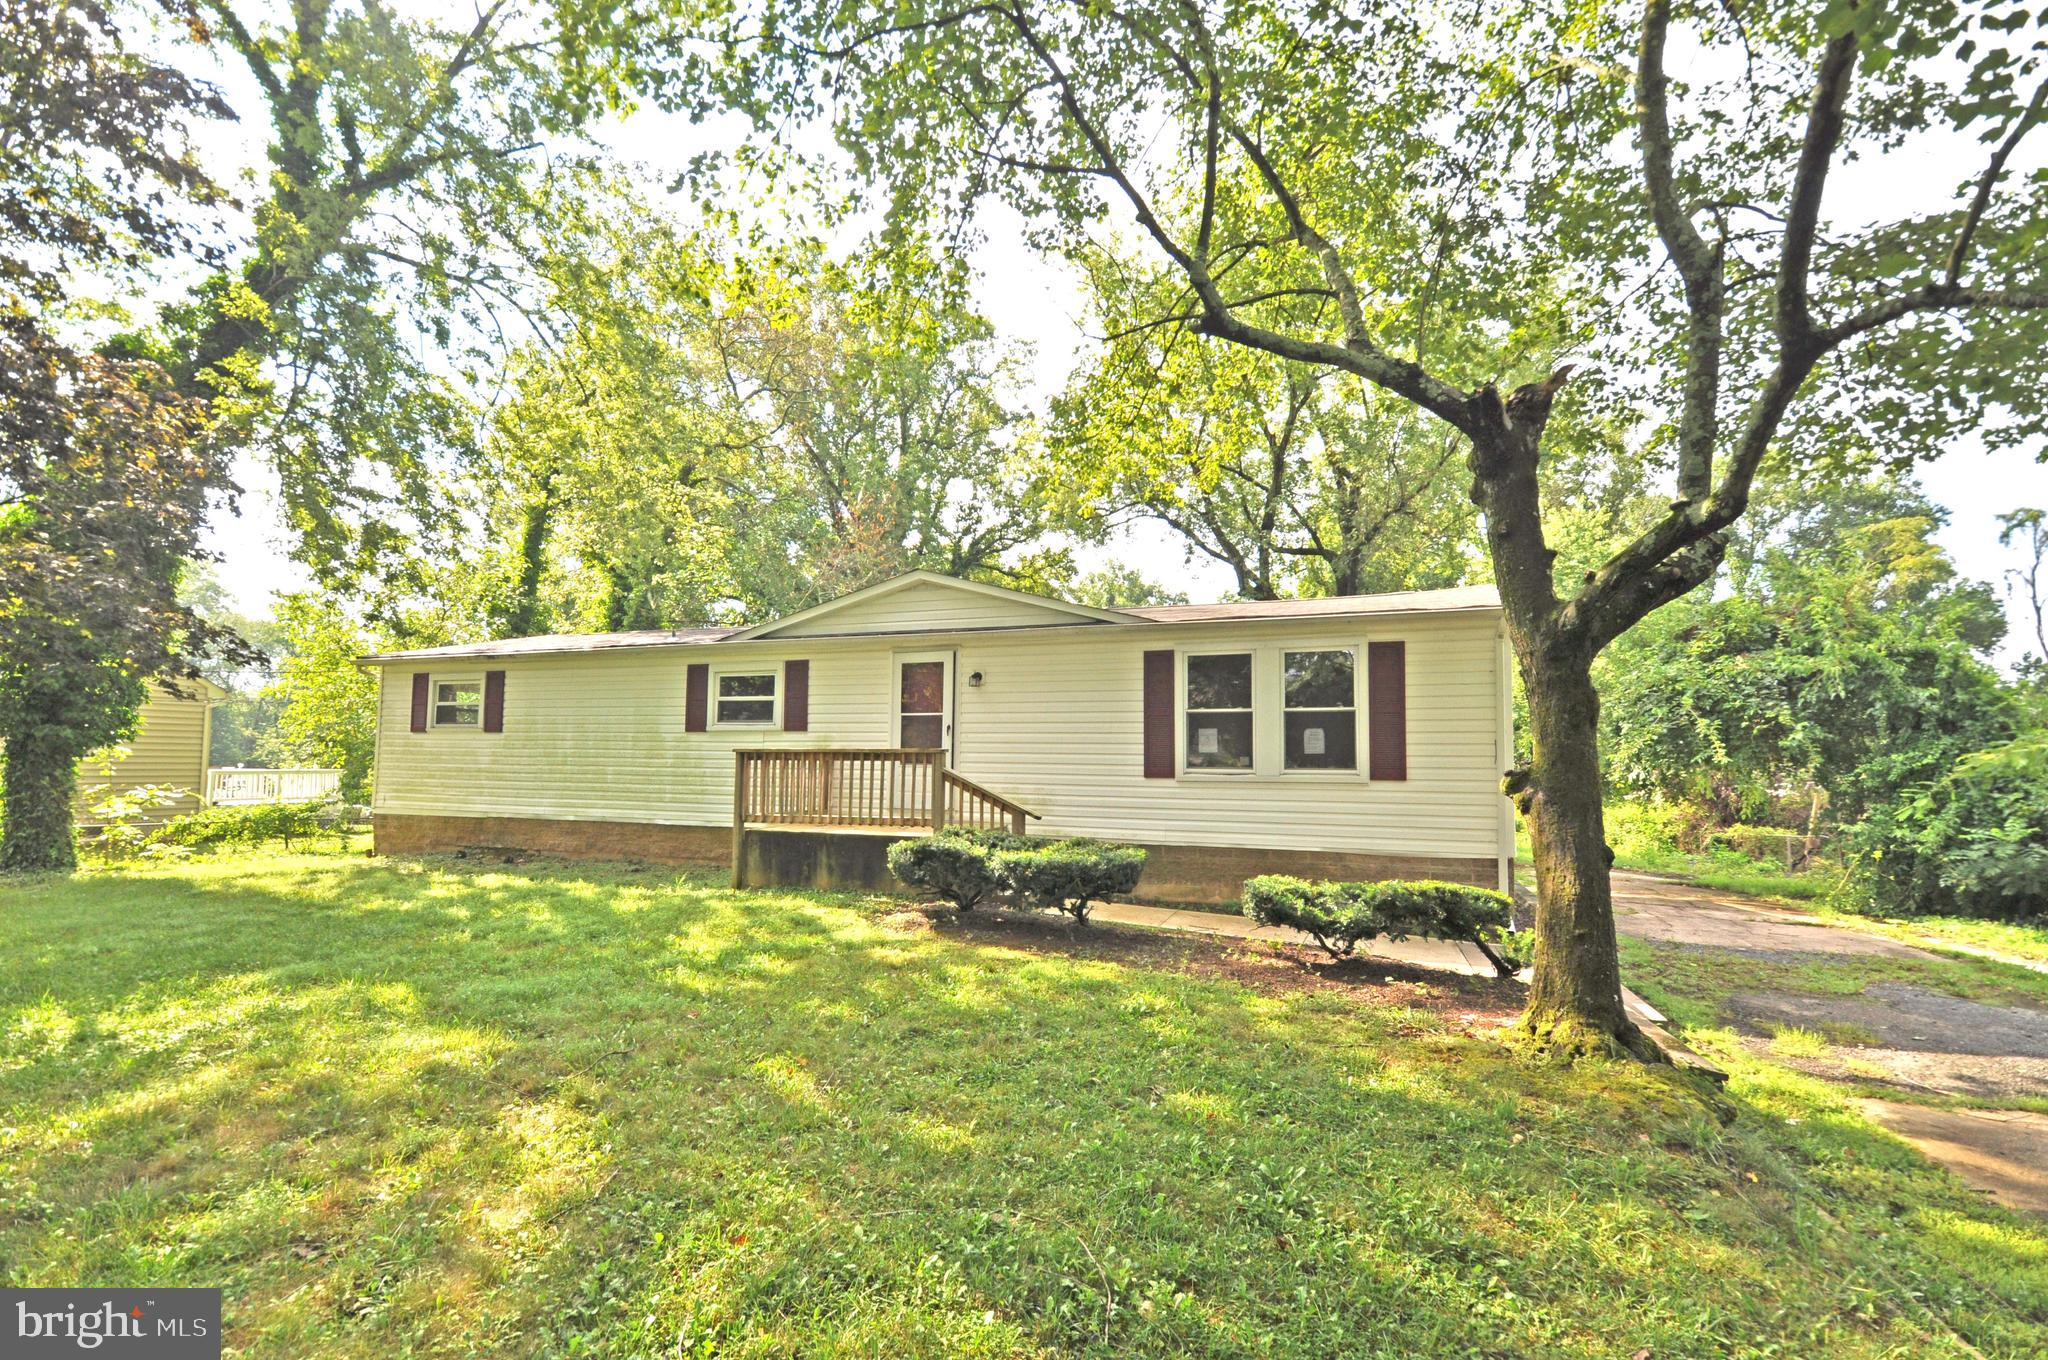 Single Family Home located in quiet community. Property features 4 Bedrooms and 2 Full Bathroom. Upd